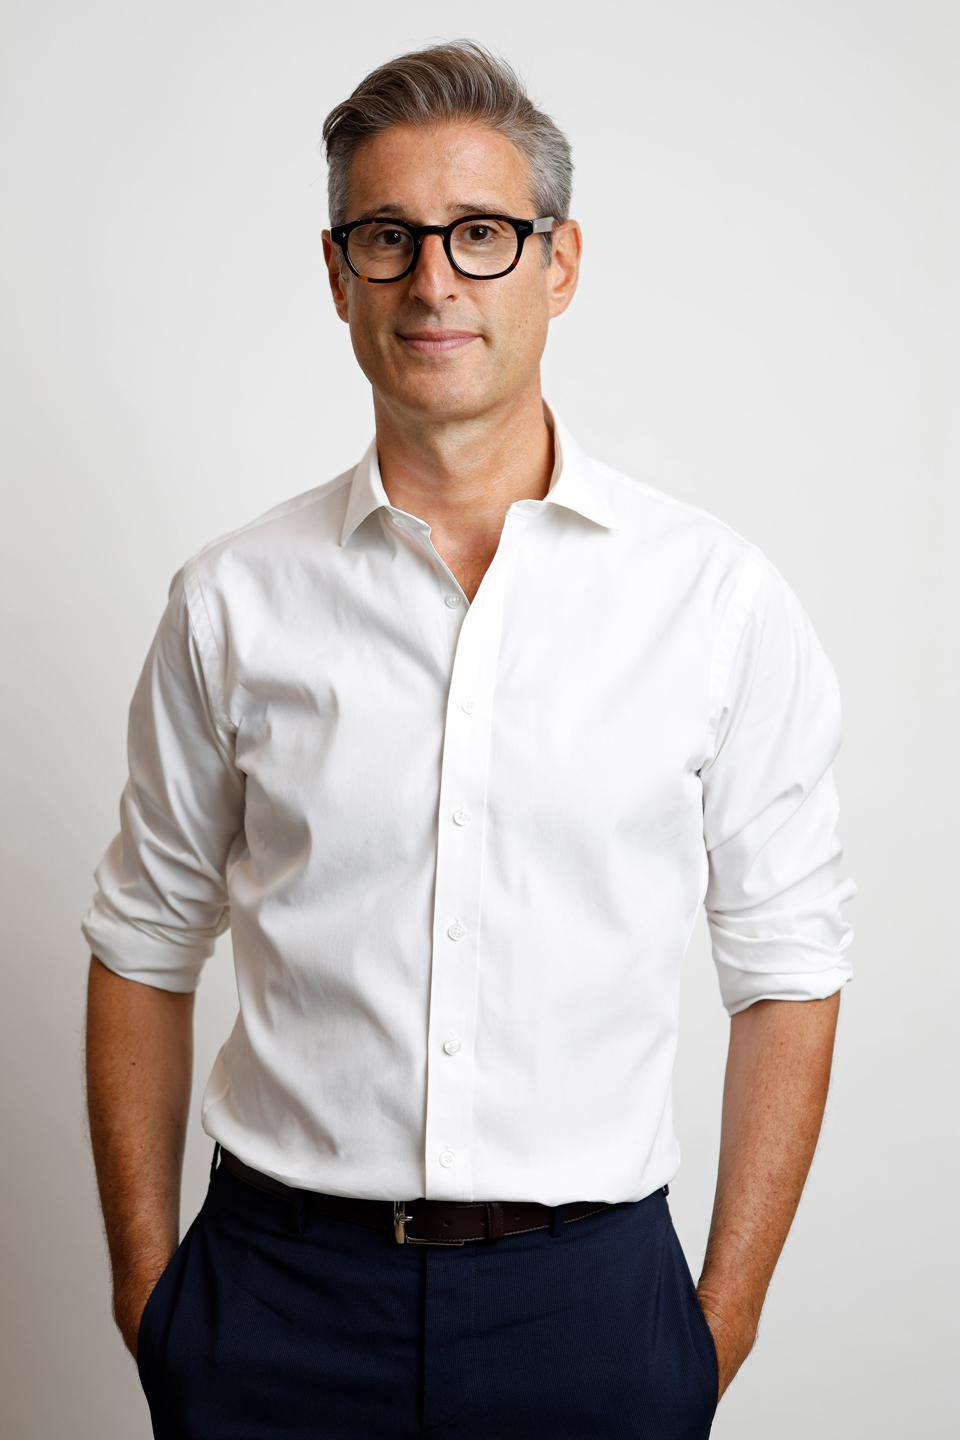 A picture of Francois Kress, Co-founder & CEO Feelmore Labs.